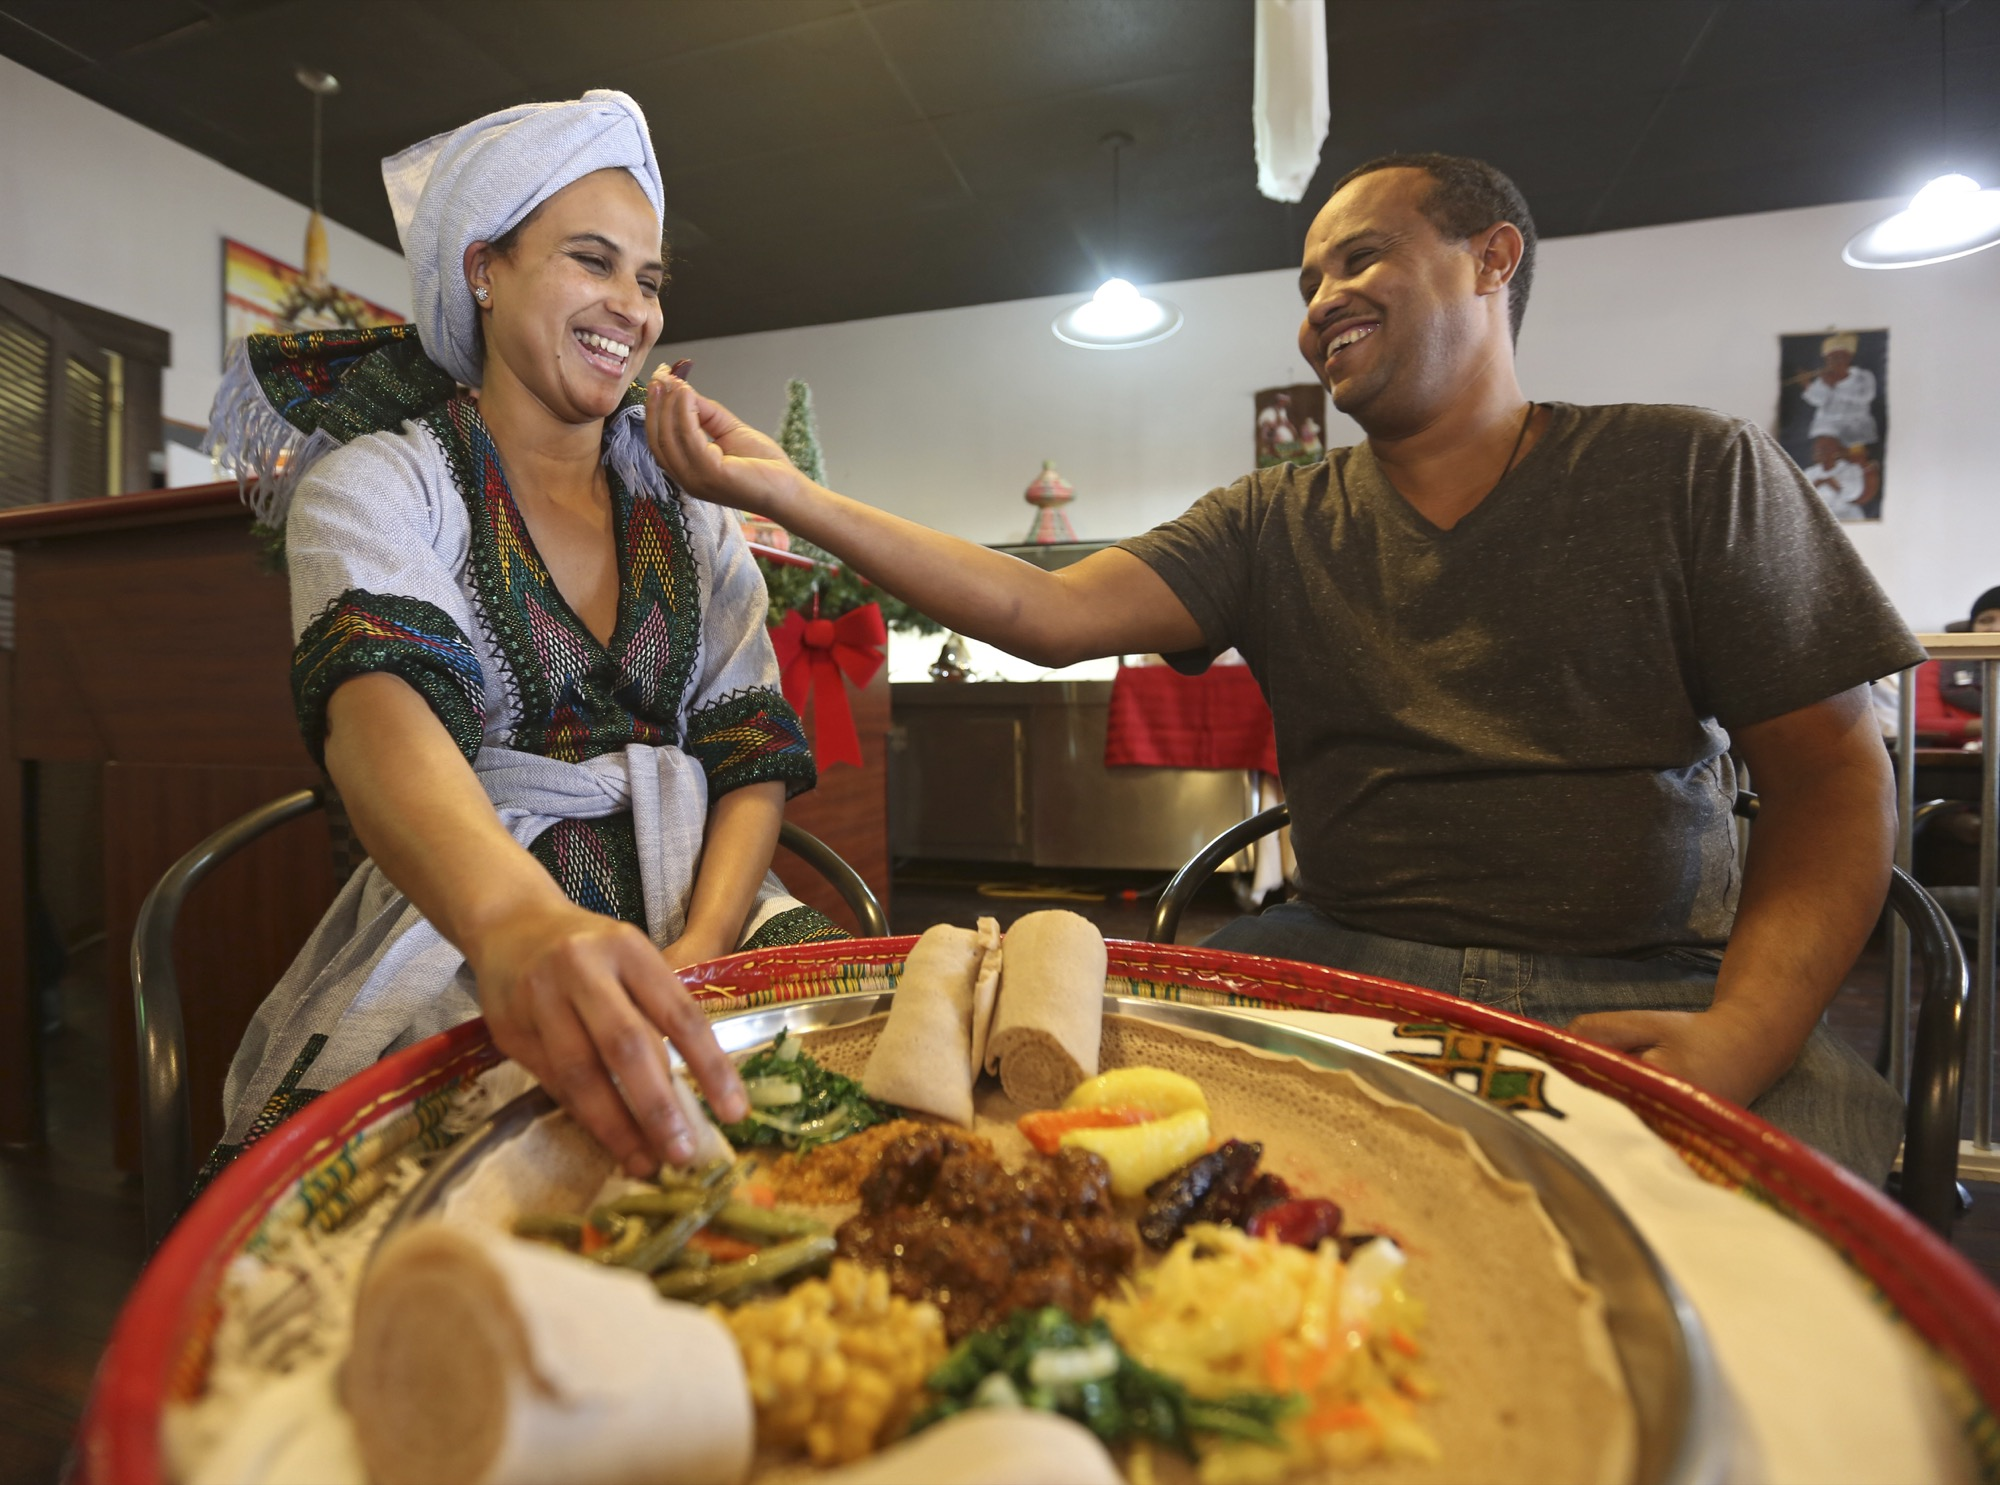 Damot Hailu and Abebe Yohannes, owners of Tana Ehtiopian Cuisine, opened their restaurant in 2015, offering tradiitonal Ethiopian dishes and a buffet.